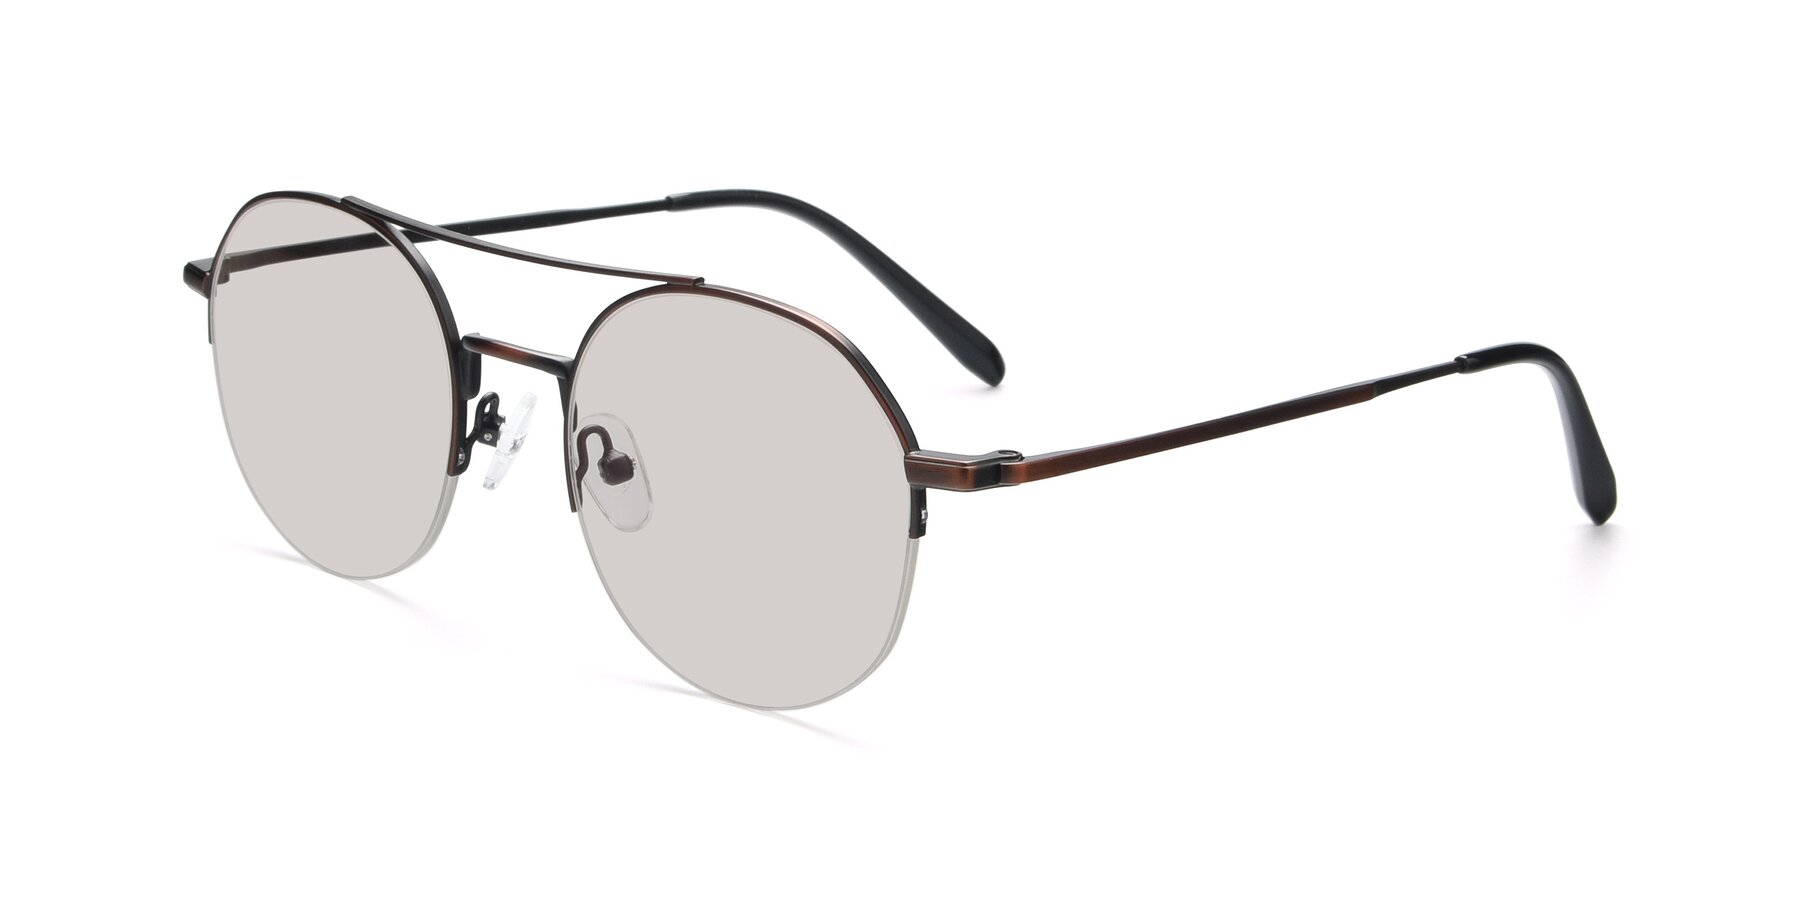 Angle of 9521 in Brown with Light Brown Tinted Lenses